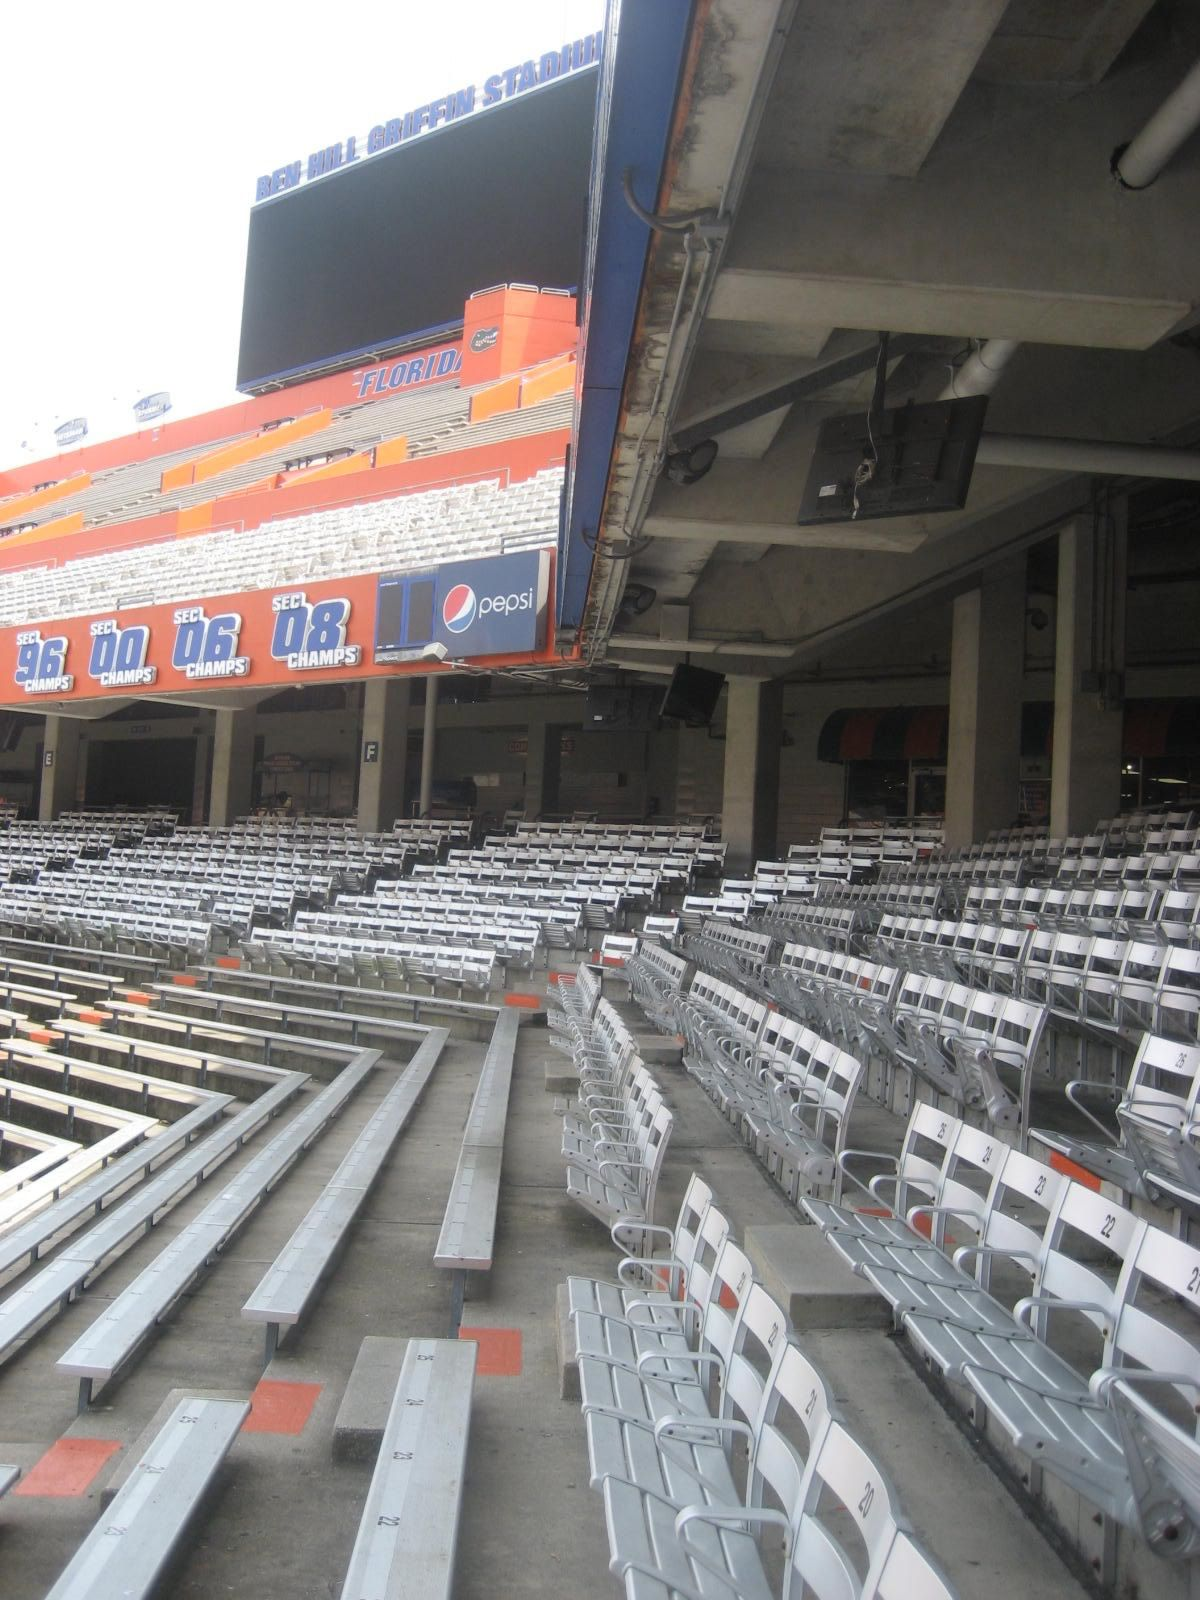 Ben Hill Griffin Stadium Florida Seating Guide Rateyourseats Com Seating Charts Seat View Seating